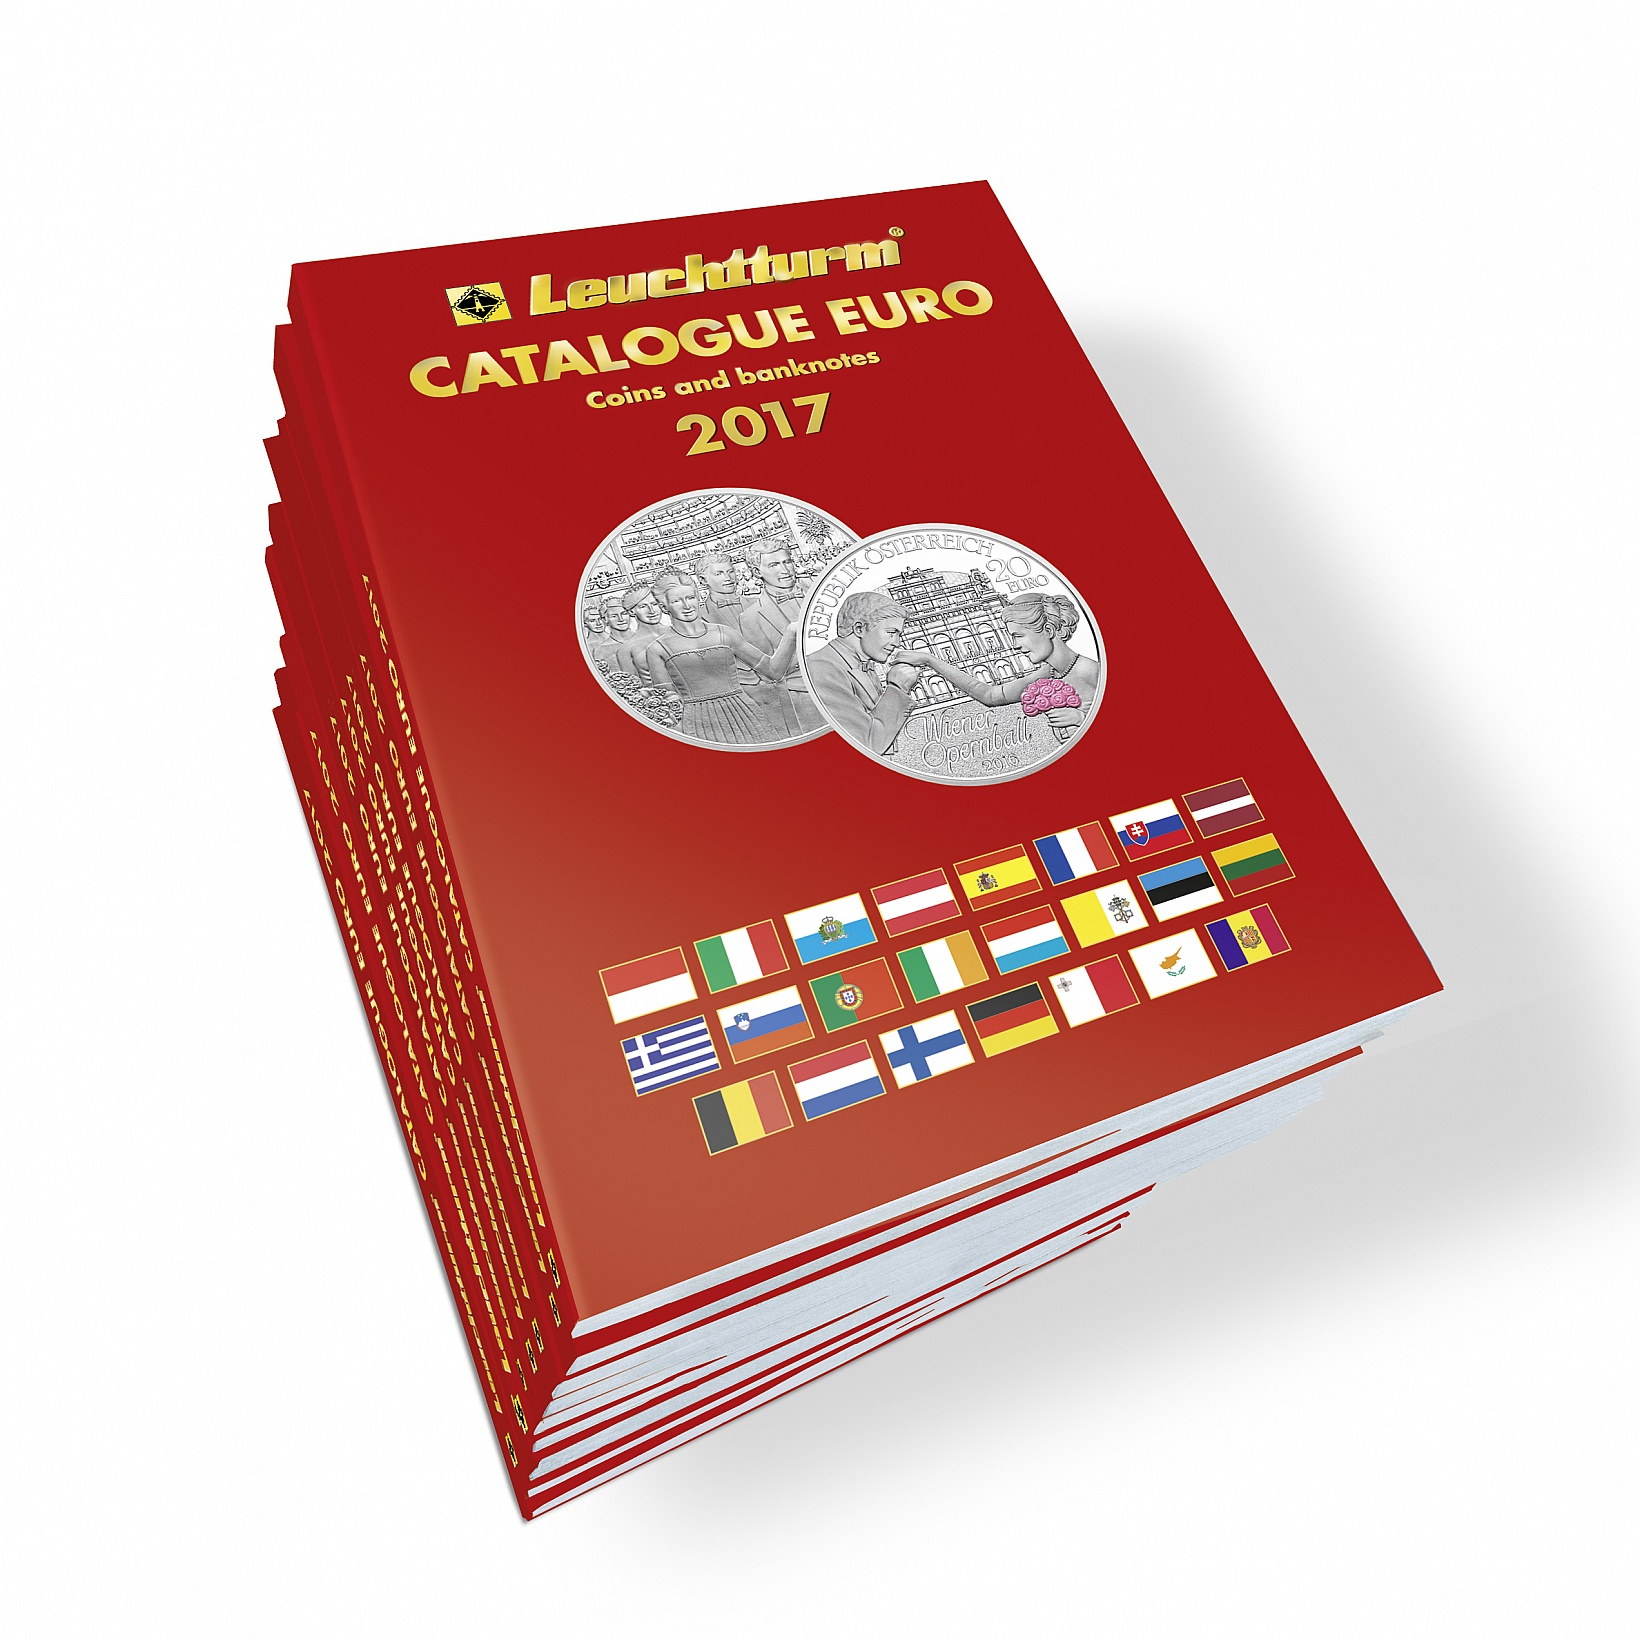 Catalogo del Euro 2017 - Ingles